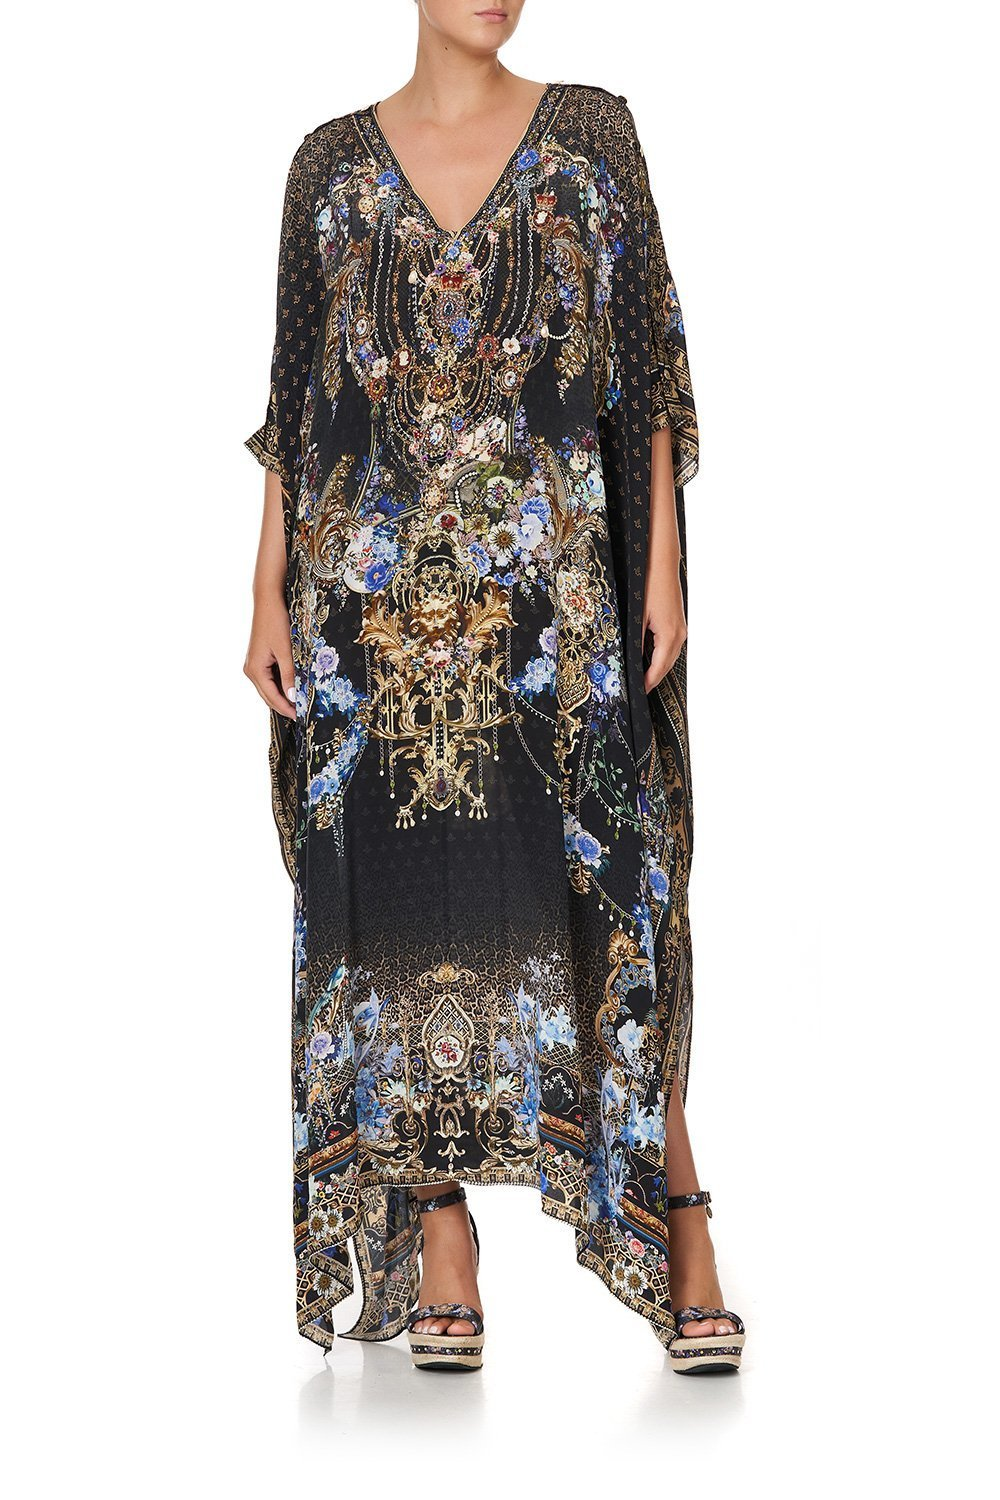 LONG KAFTAN WITH BUTTONS PALACE PLAYHOUSE